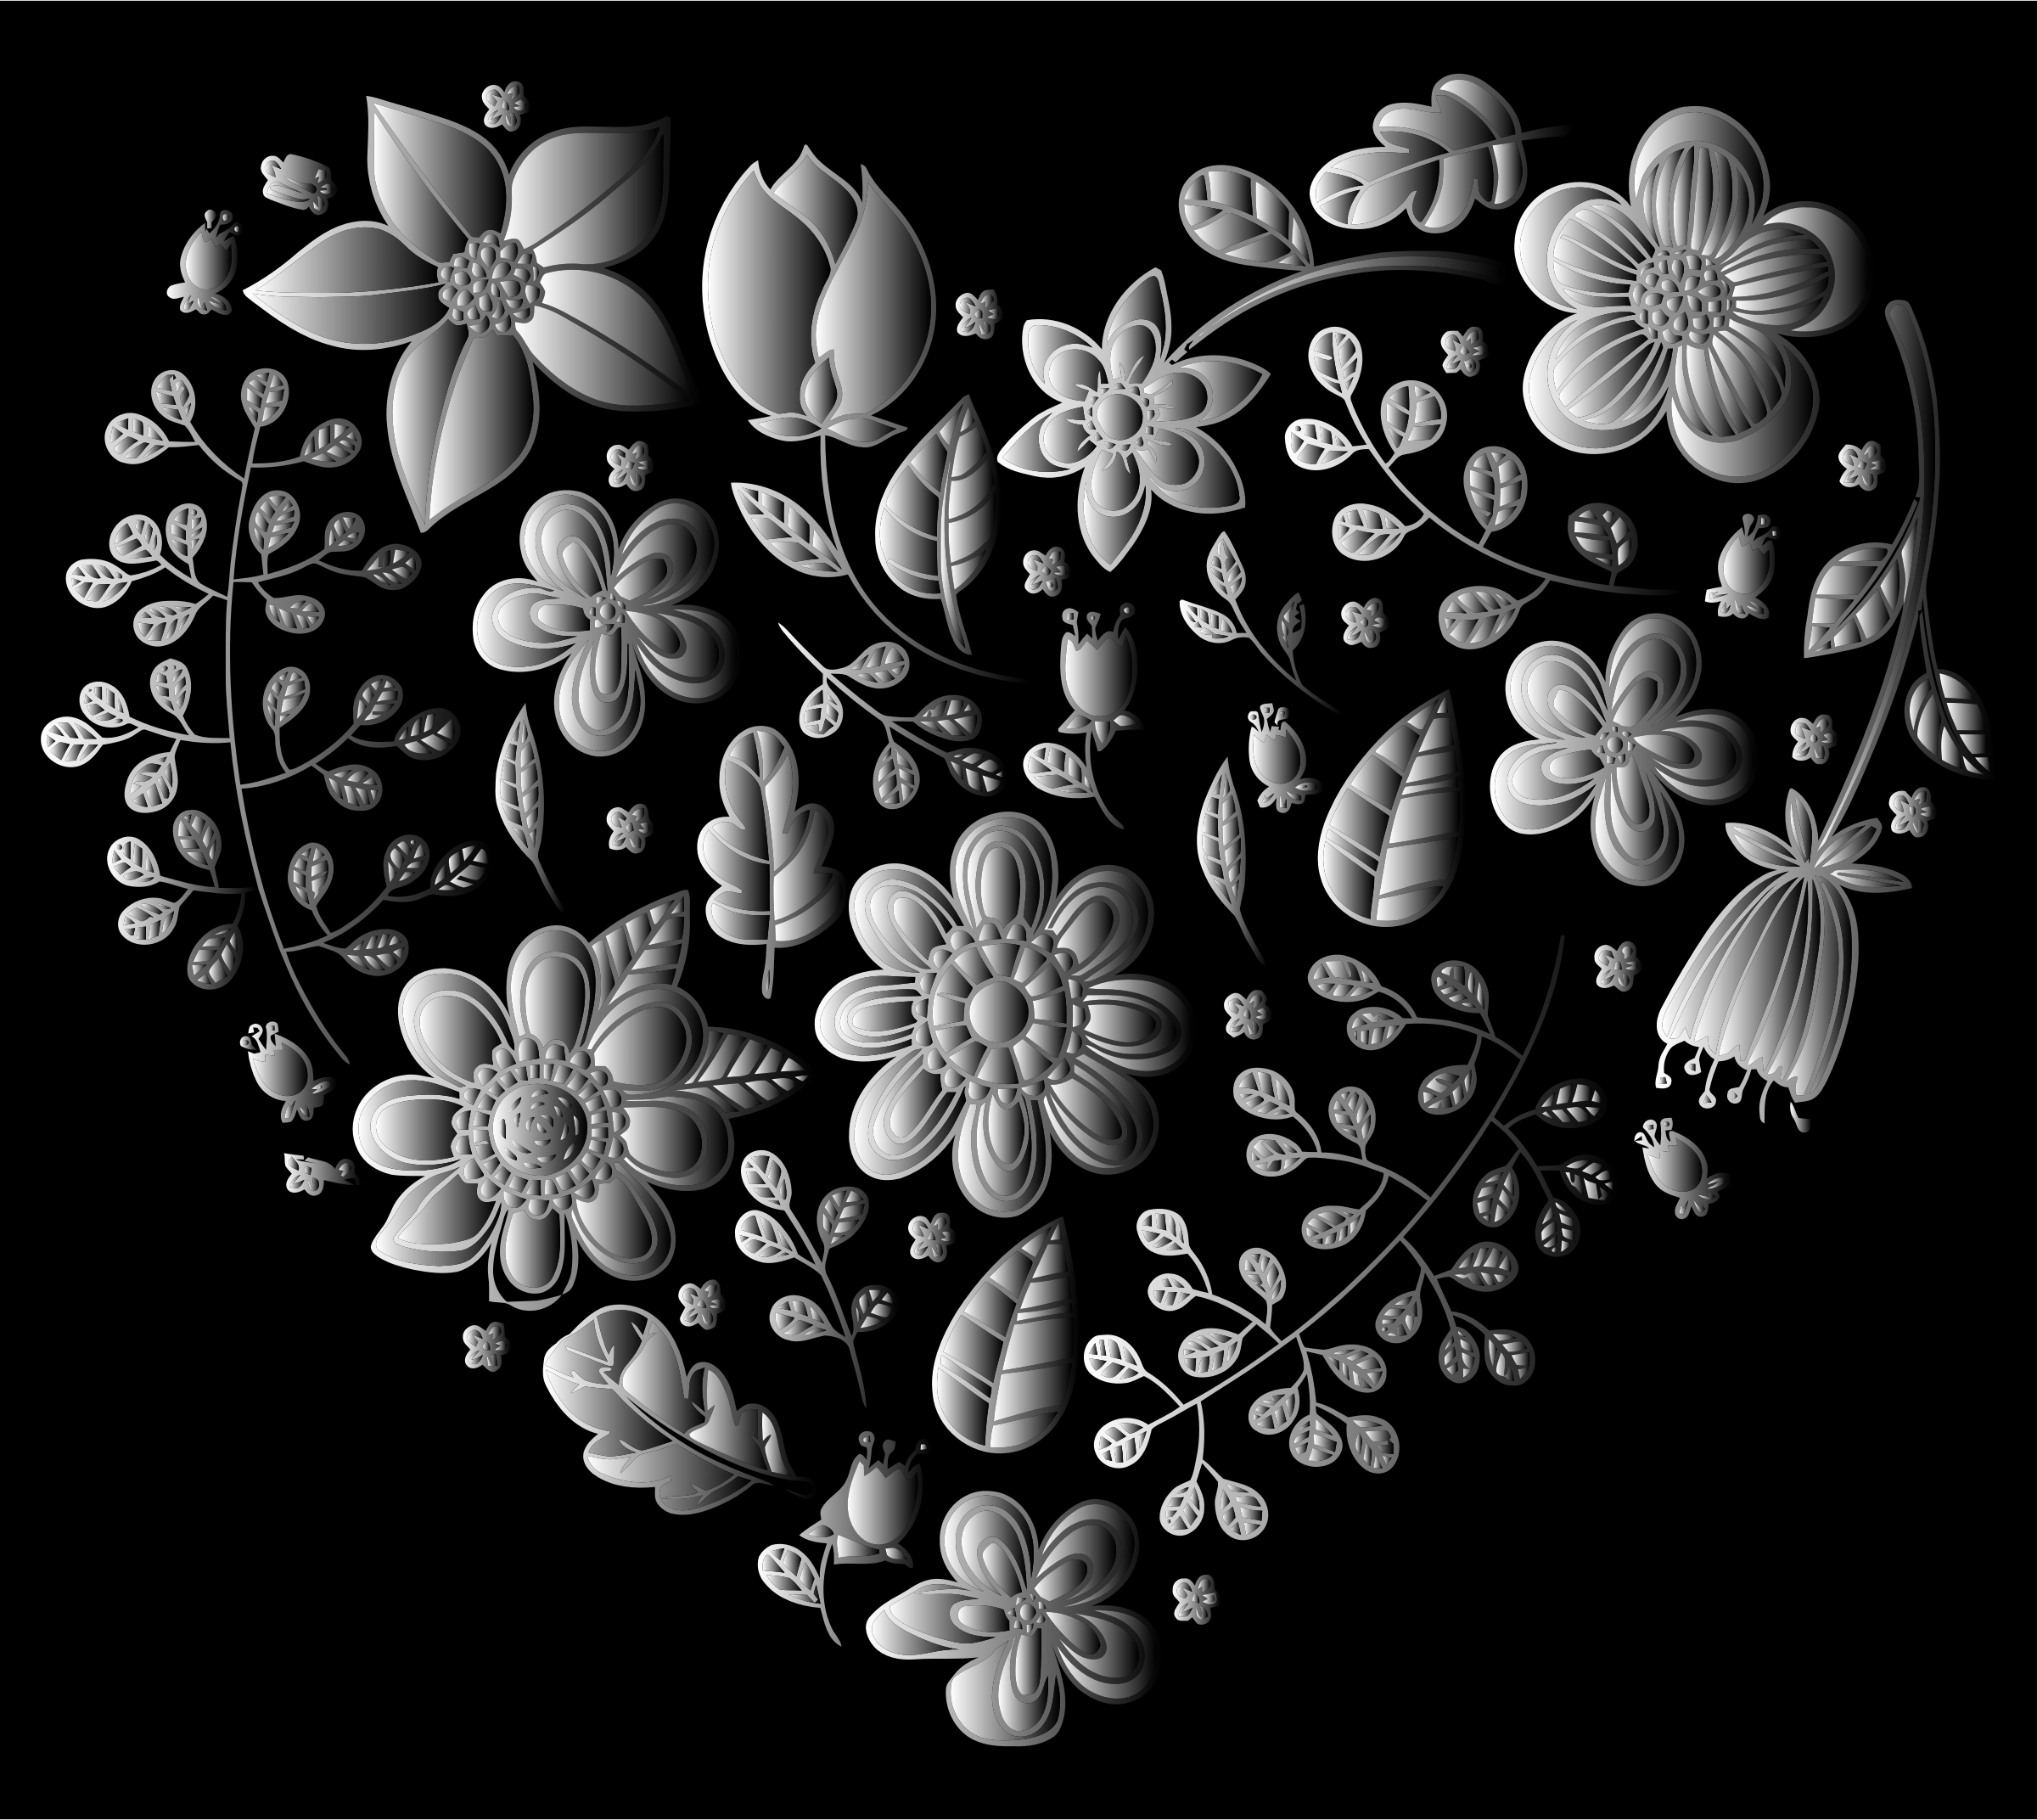 Grayscale Floral Heart by GDJ